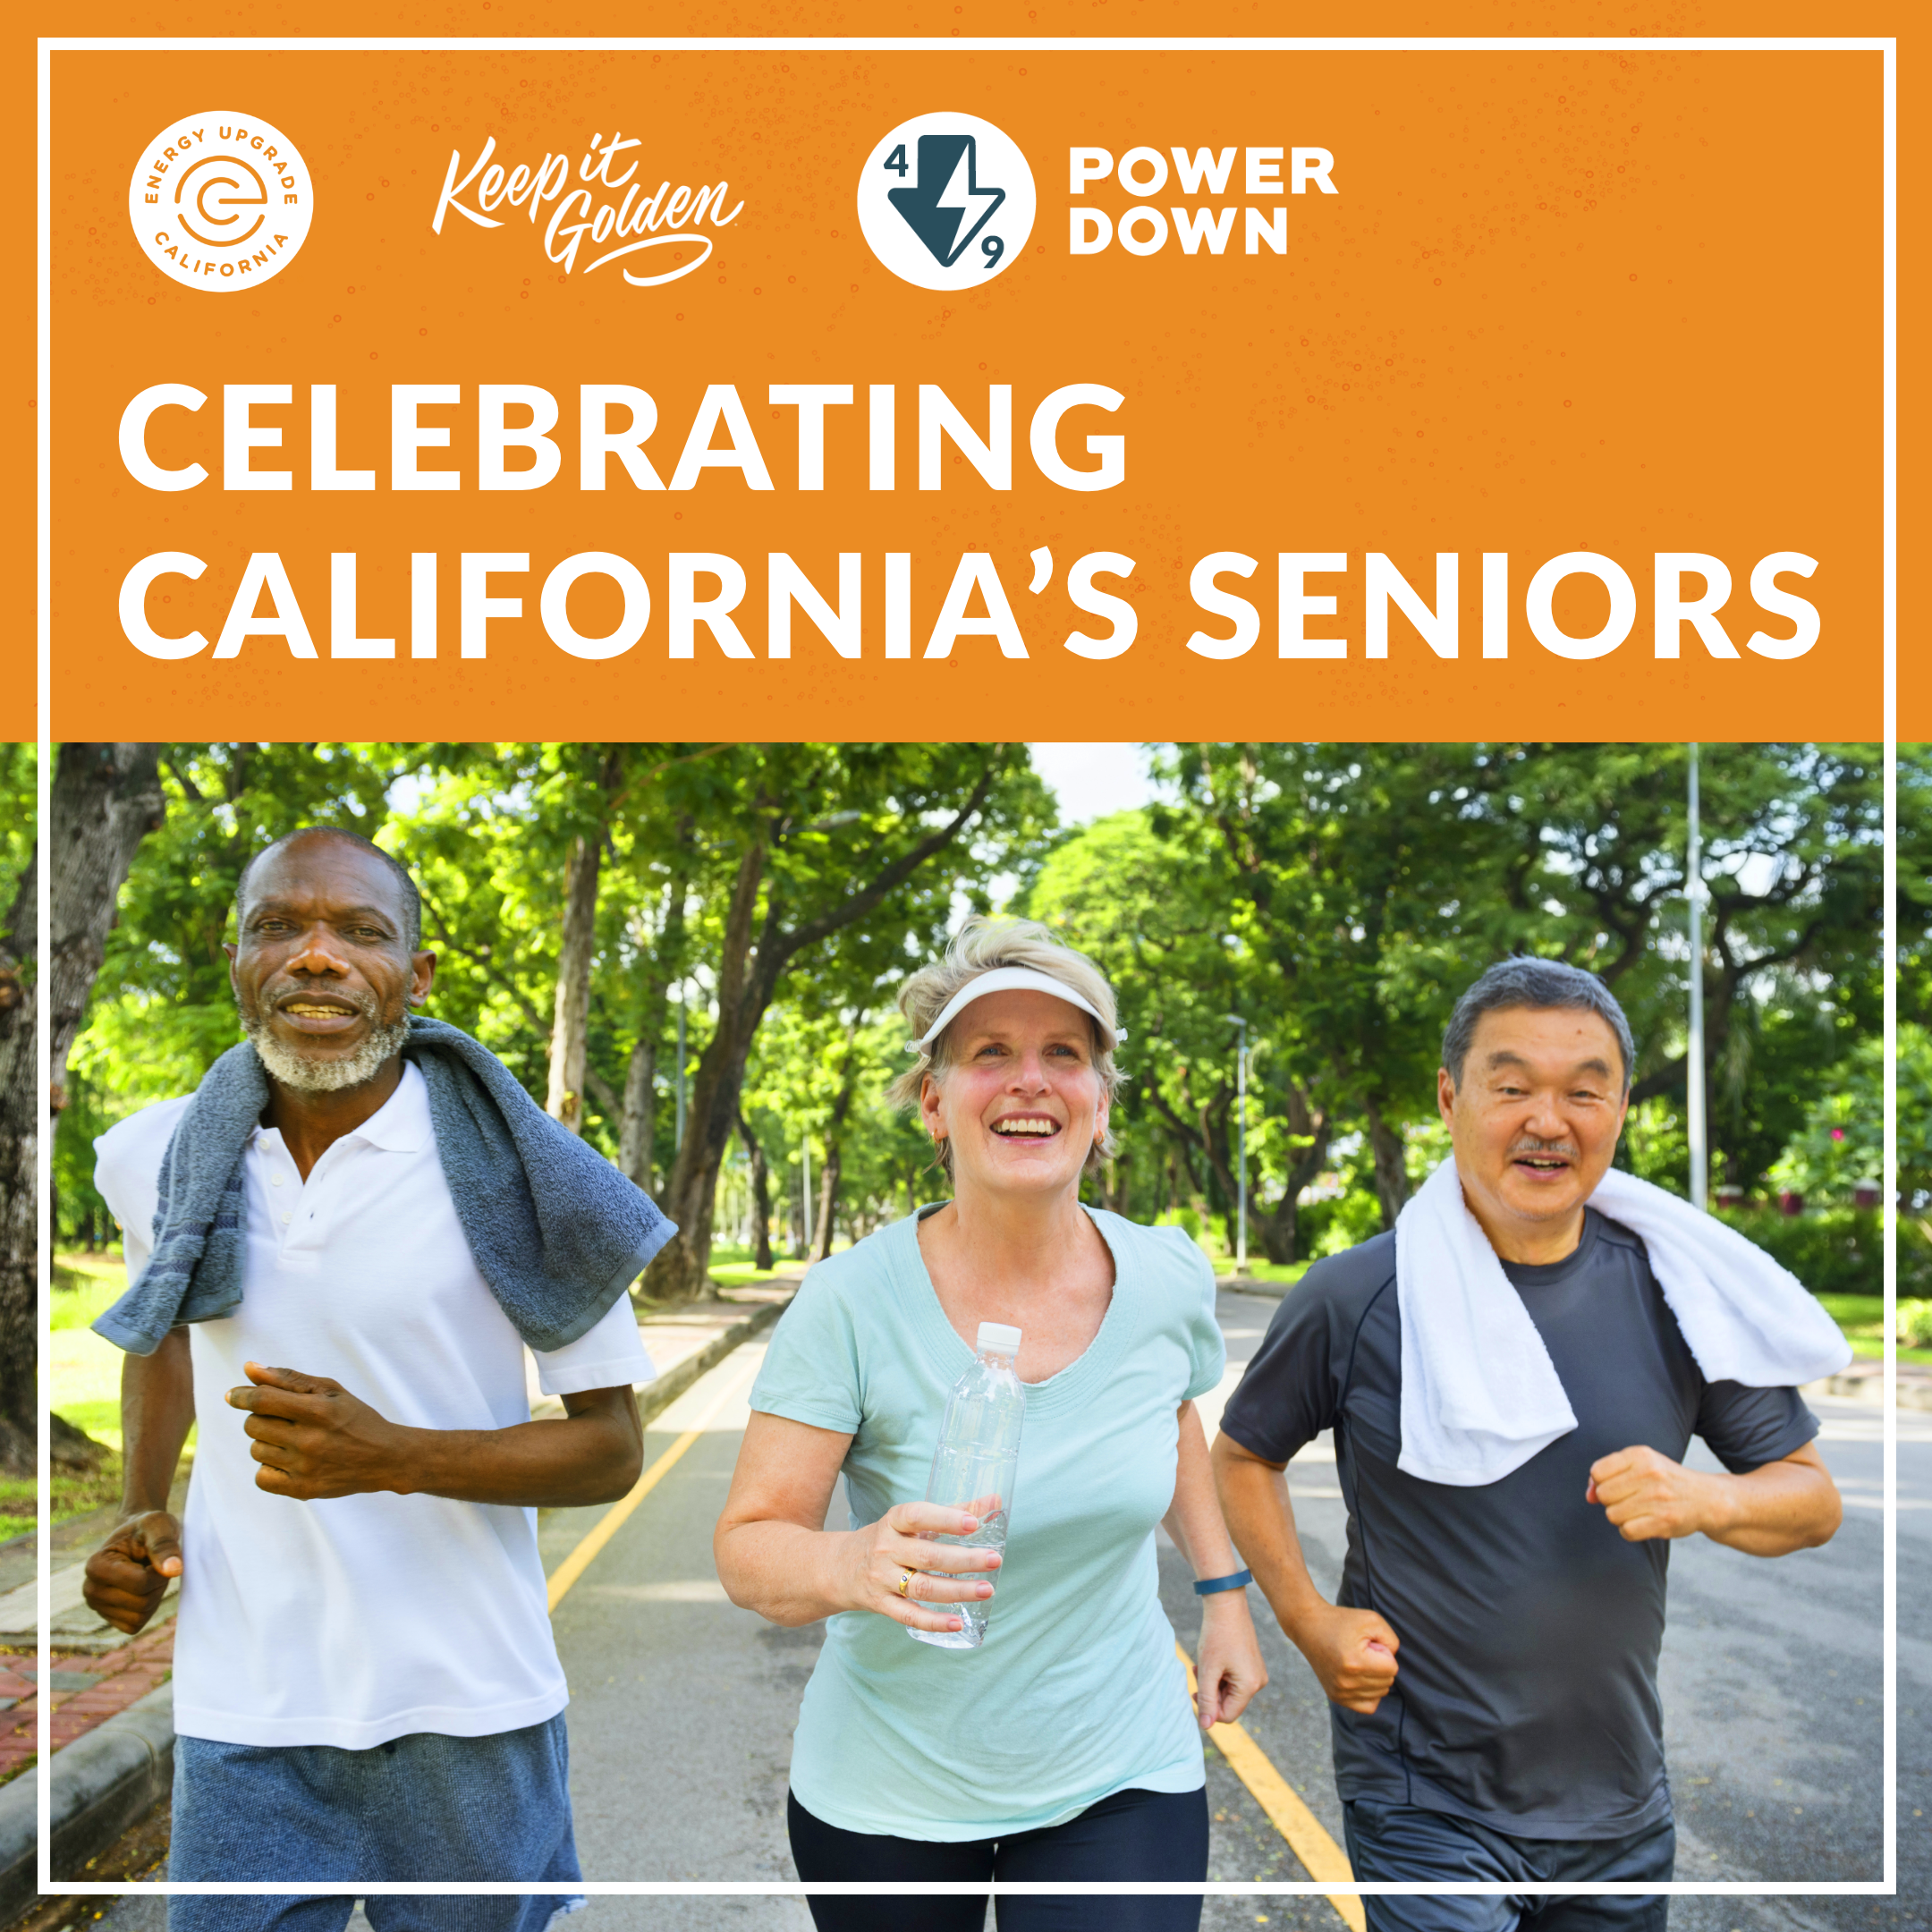 TOU: To all the seniors working to use more clean energy every day, thank you for leading by example and powering down from 4-9! #KeepItGolden https://www.energyupgradeca.org/the-movement/ #codie_riv [ID Description for ALT IMAGE: Outside background with trees lined back. Three people that look like seniors walking. On the left is a black person wearing white shirt with gray gym towel on the shoulder. In the center, a white person wearing sun visor and light green shirt, carrying bottle of water. On the right is an Asian person wearing dark gray shirt with white towel on the shoulder. ]